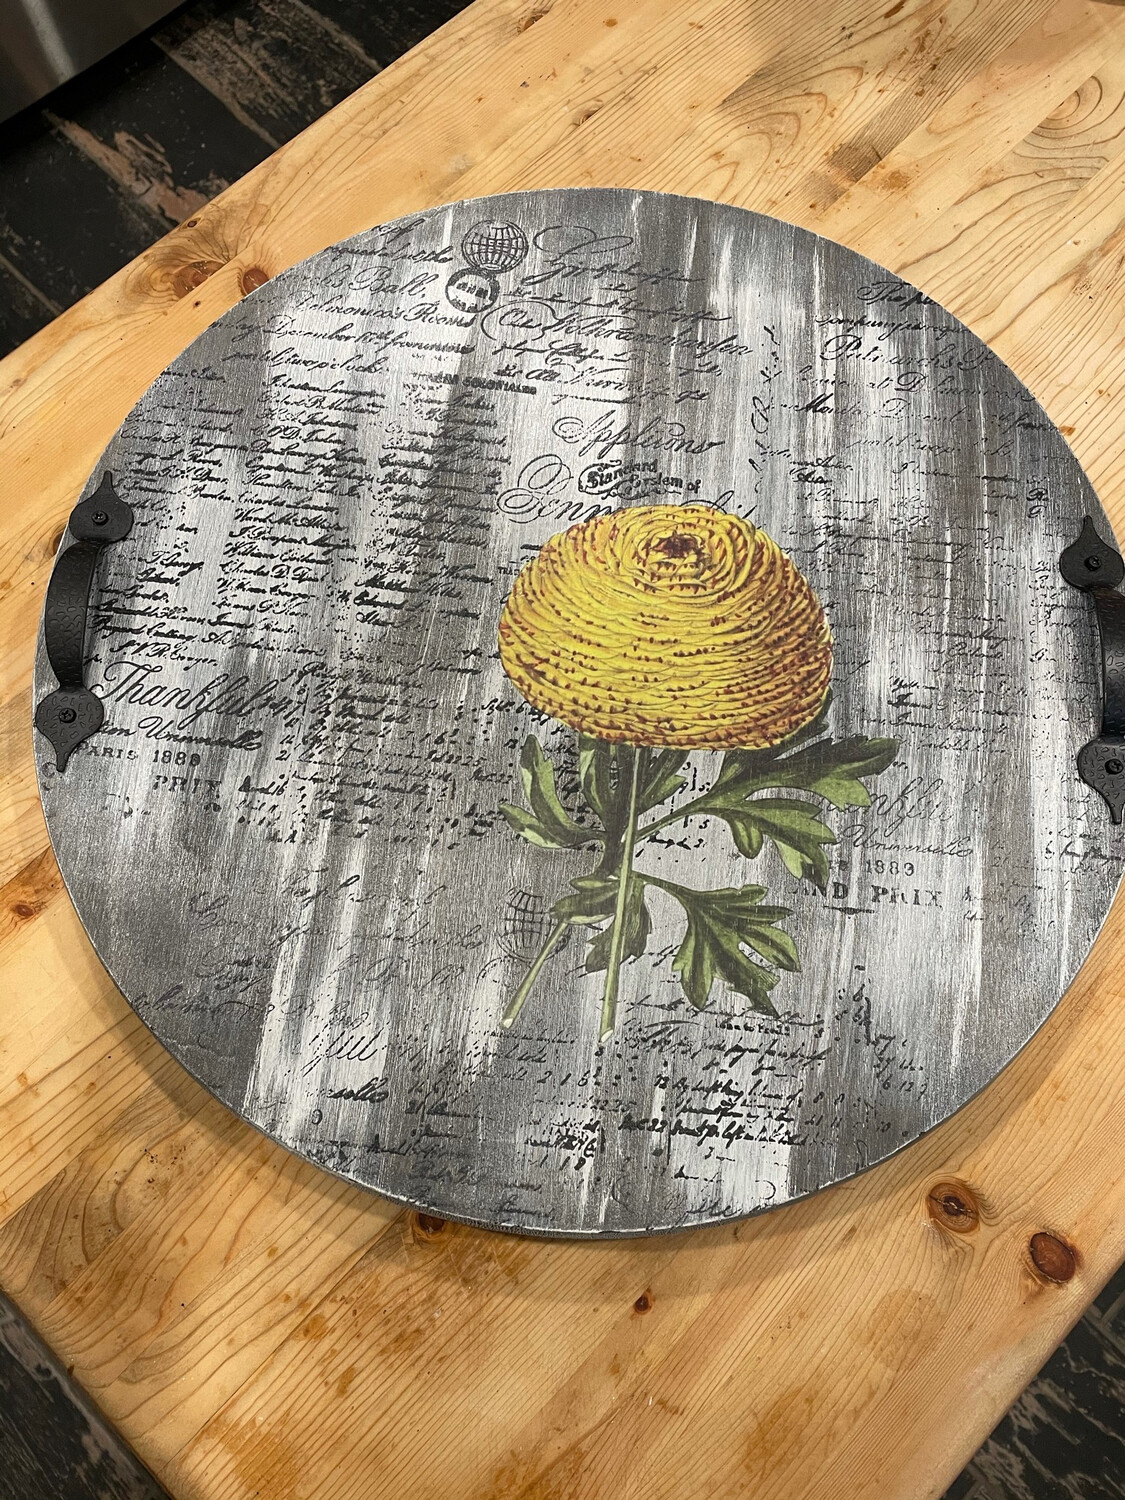 Create Your Own Tray Class October 2nd 4-7 PM